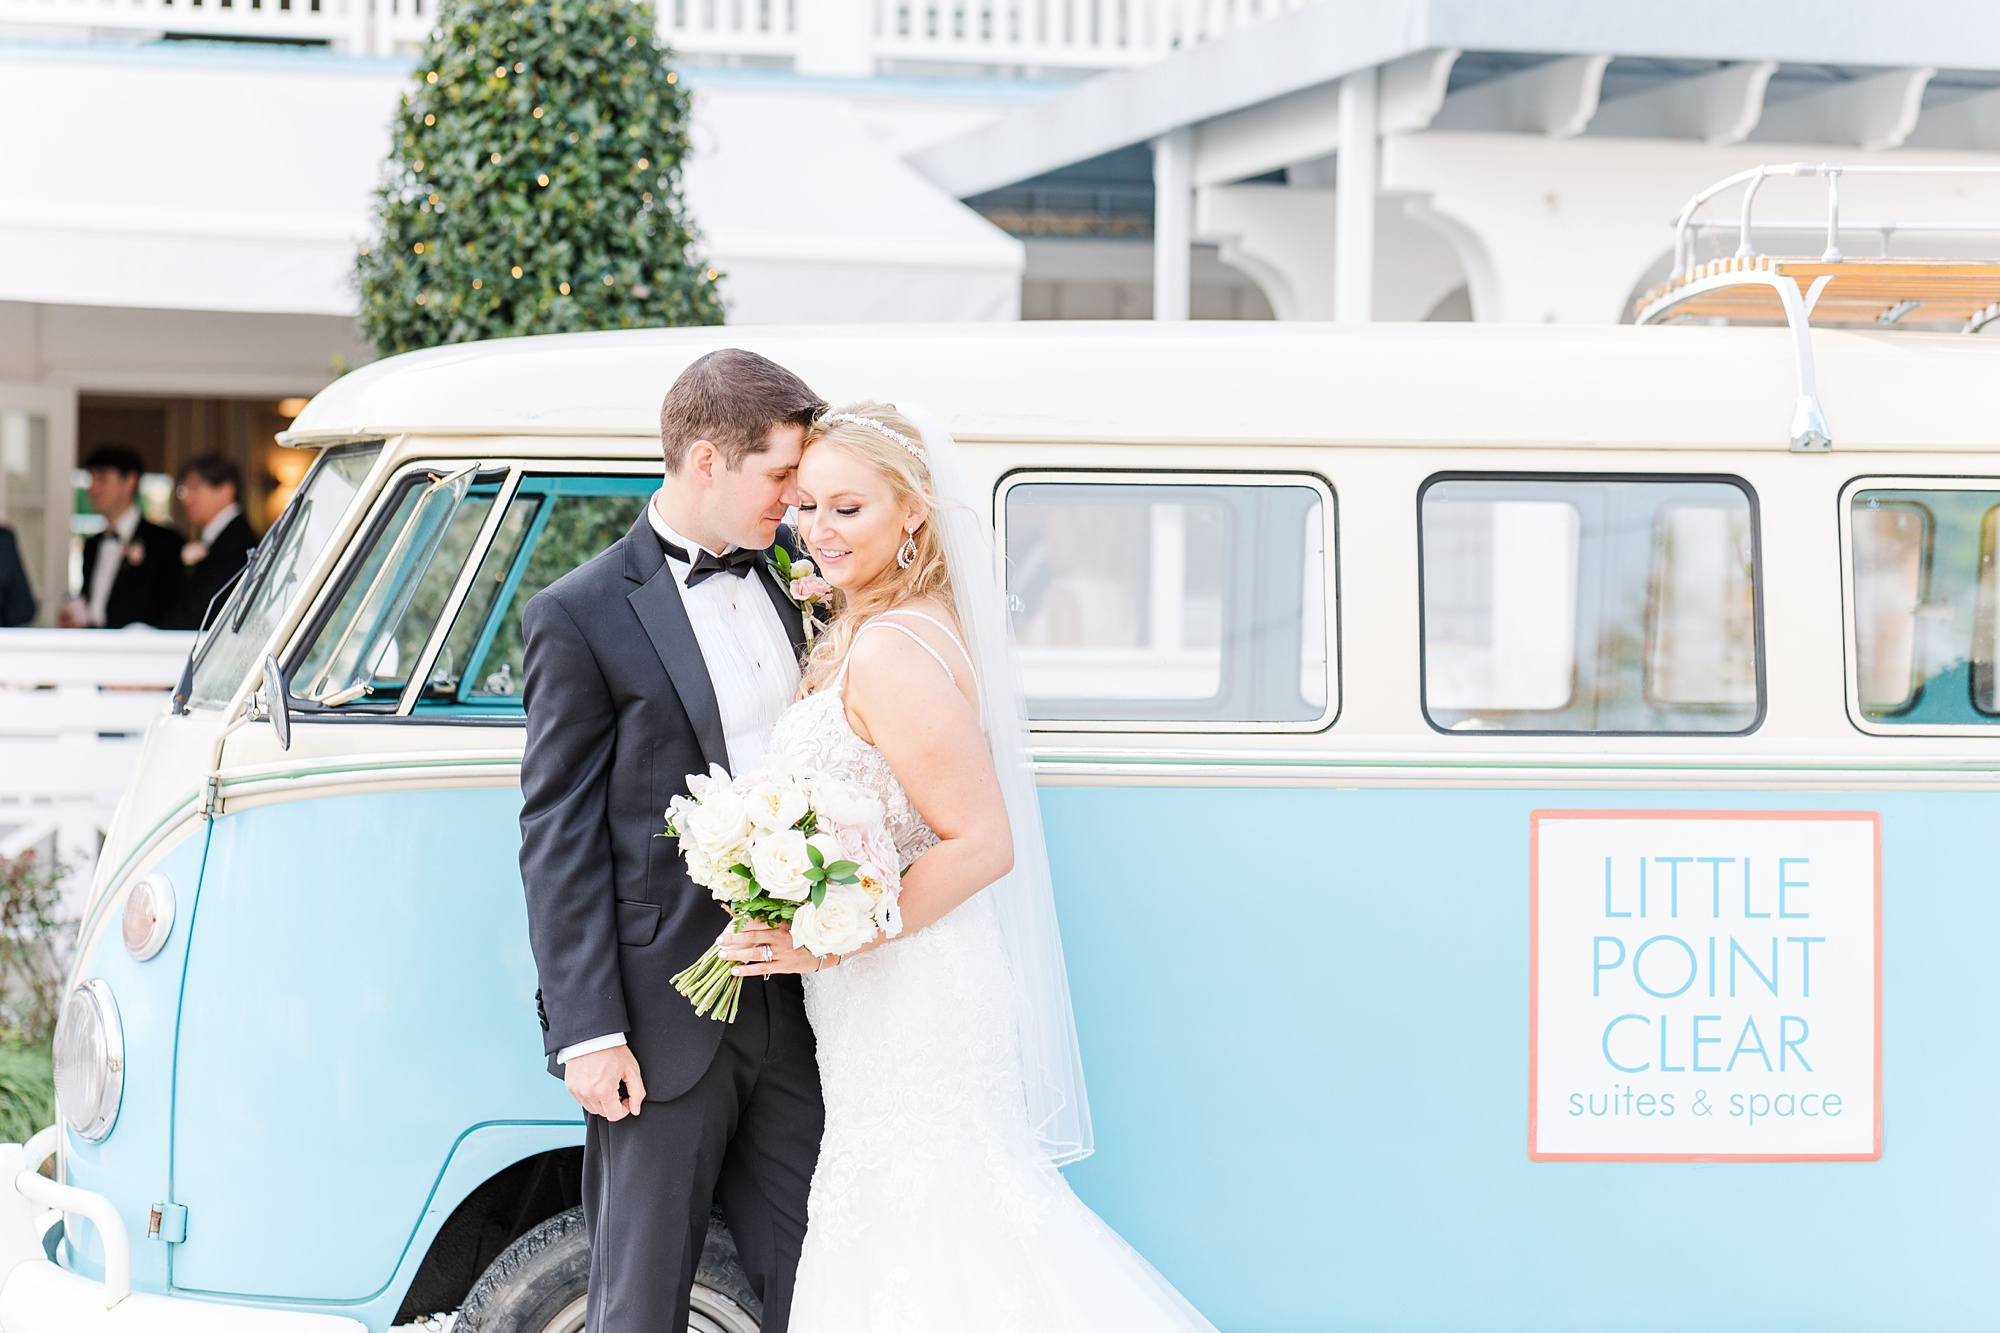 bride and groom pose next to light blue bus at Little Point Clear